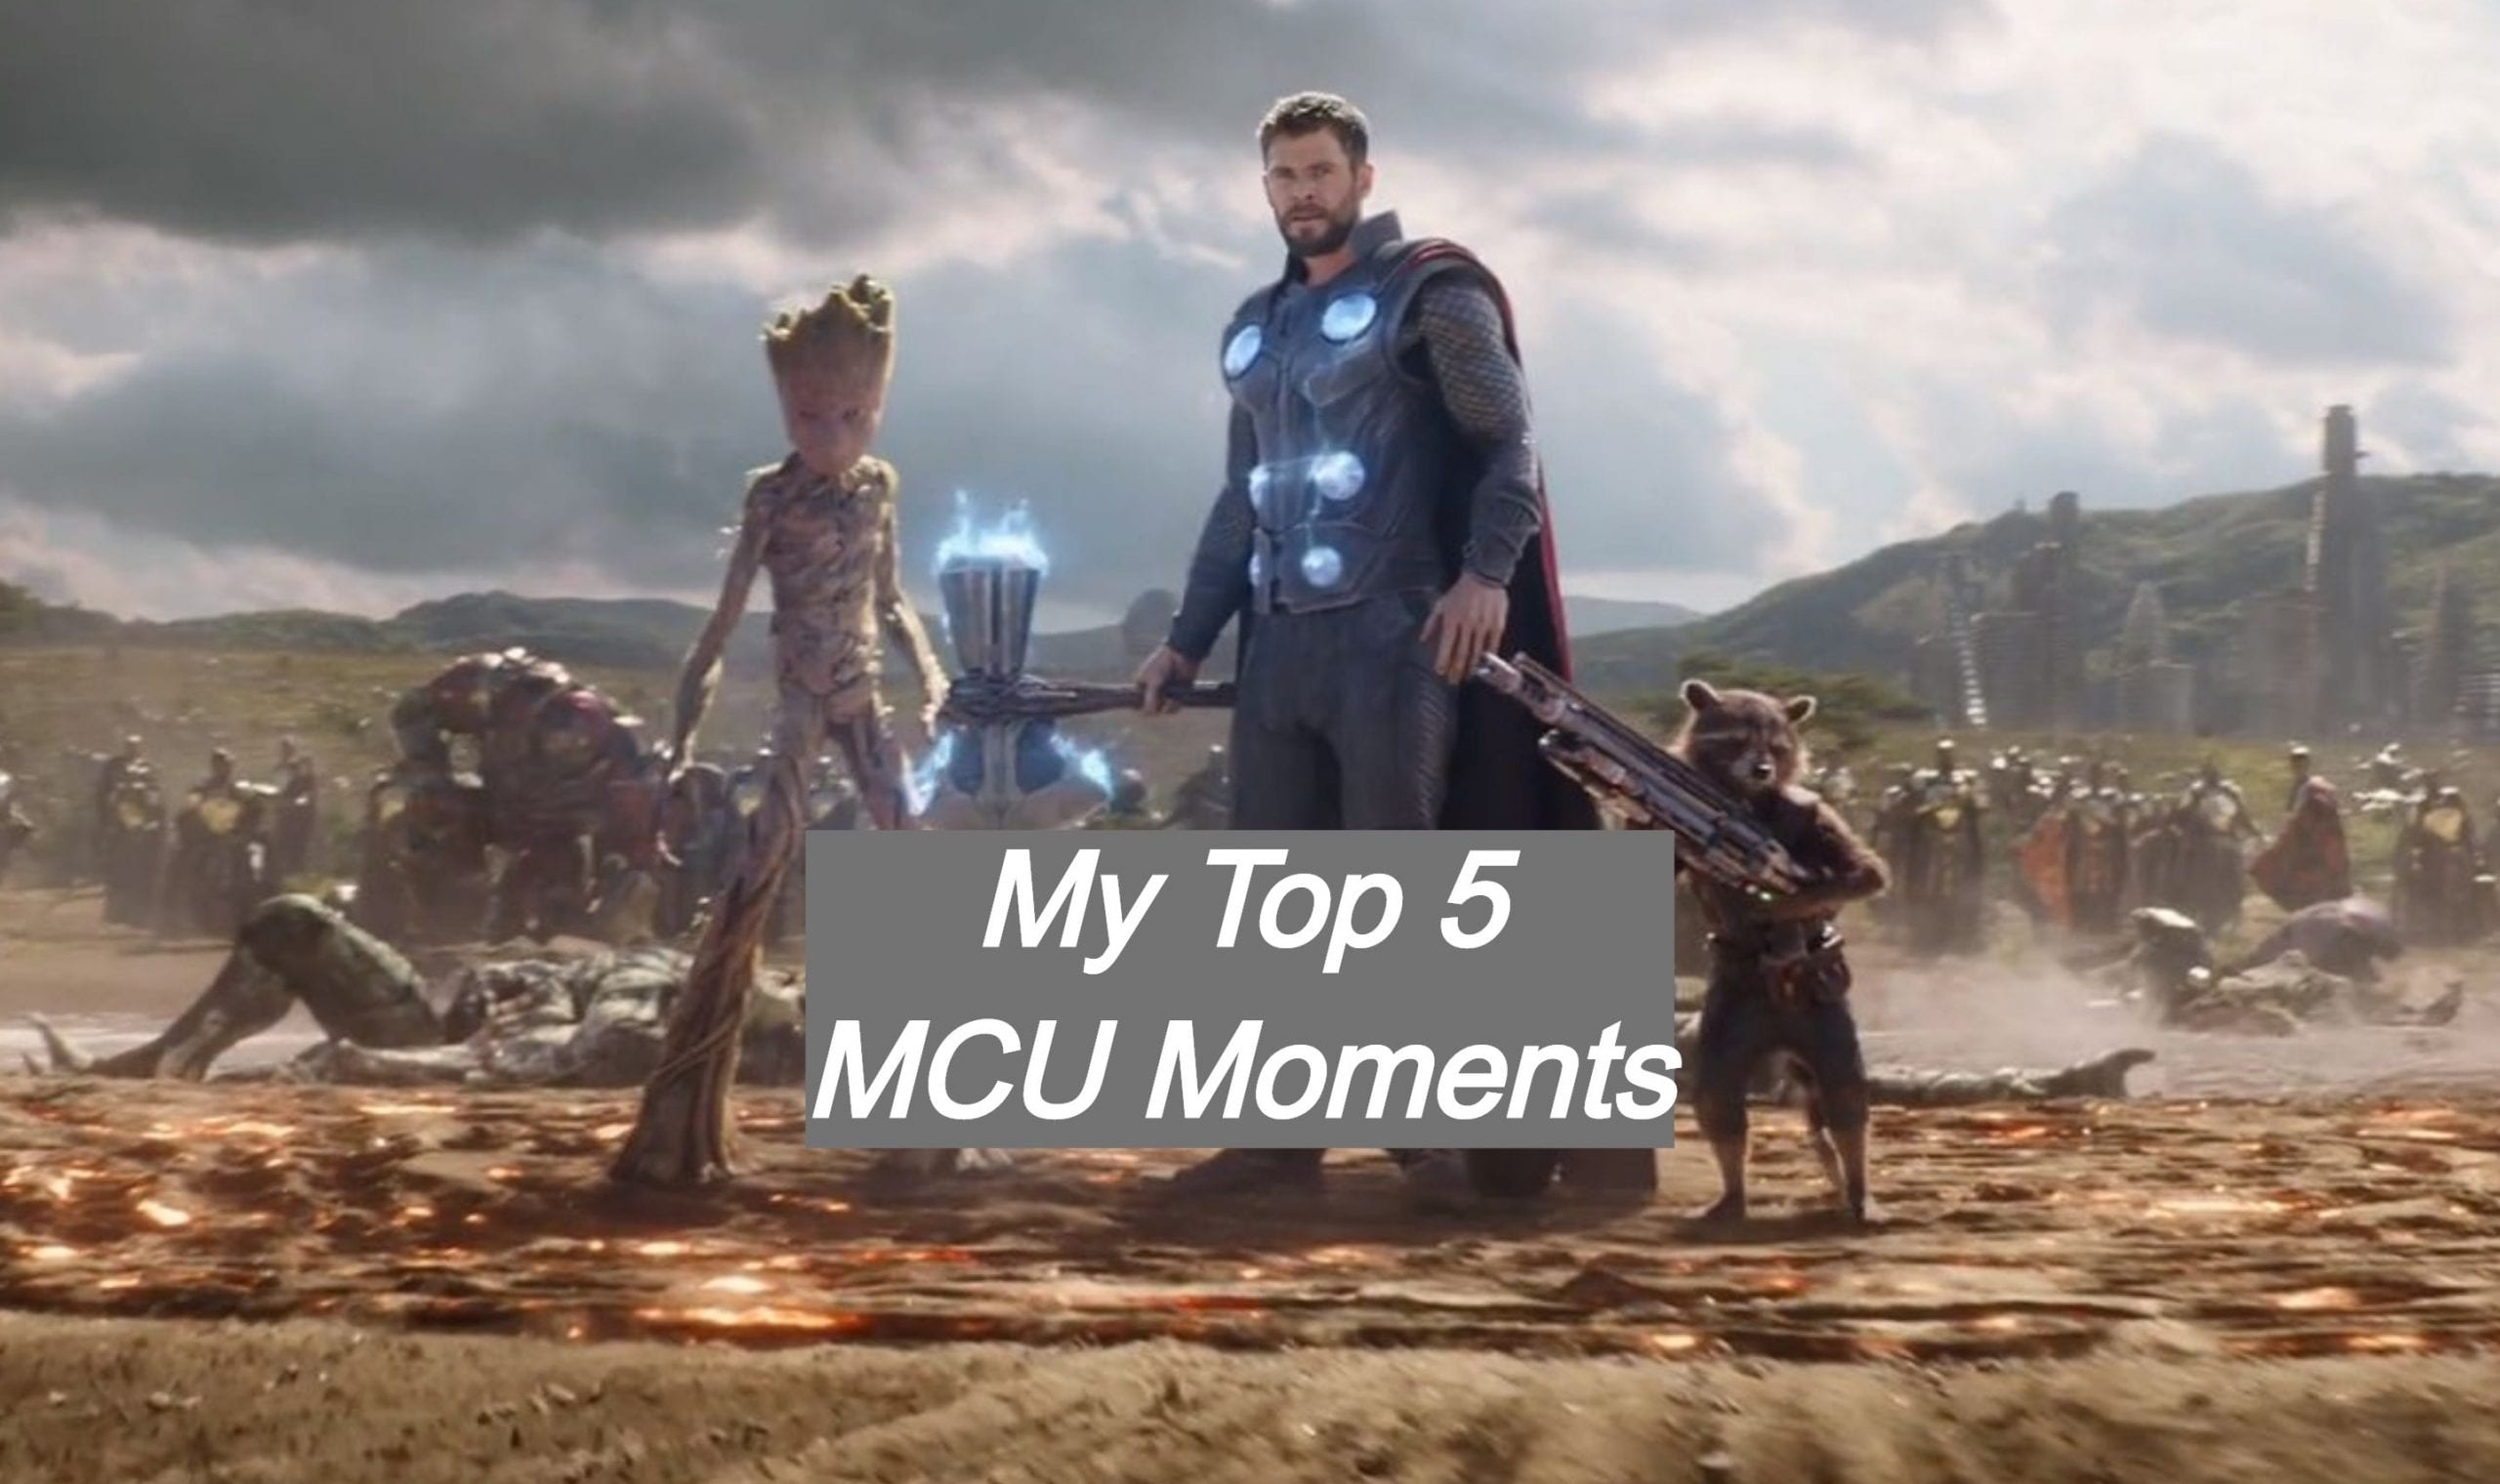 My Top 5 MCU Moments